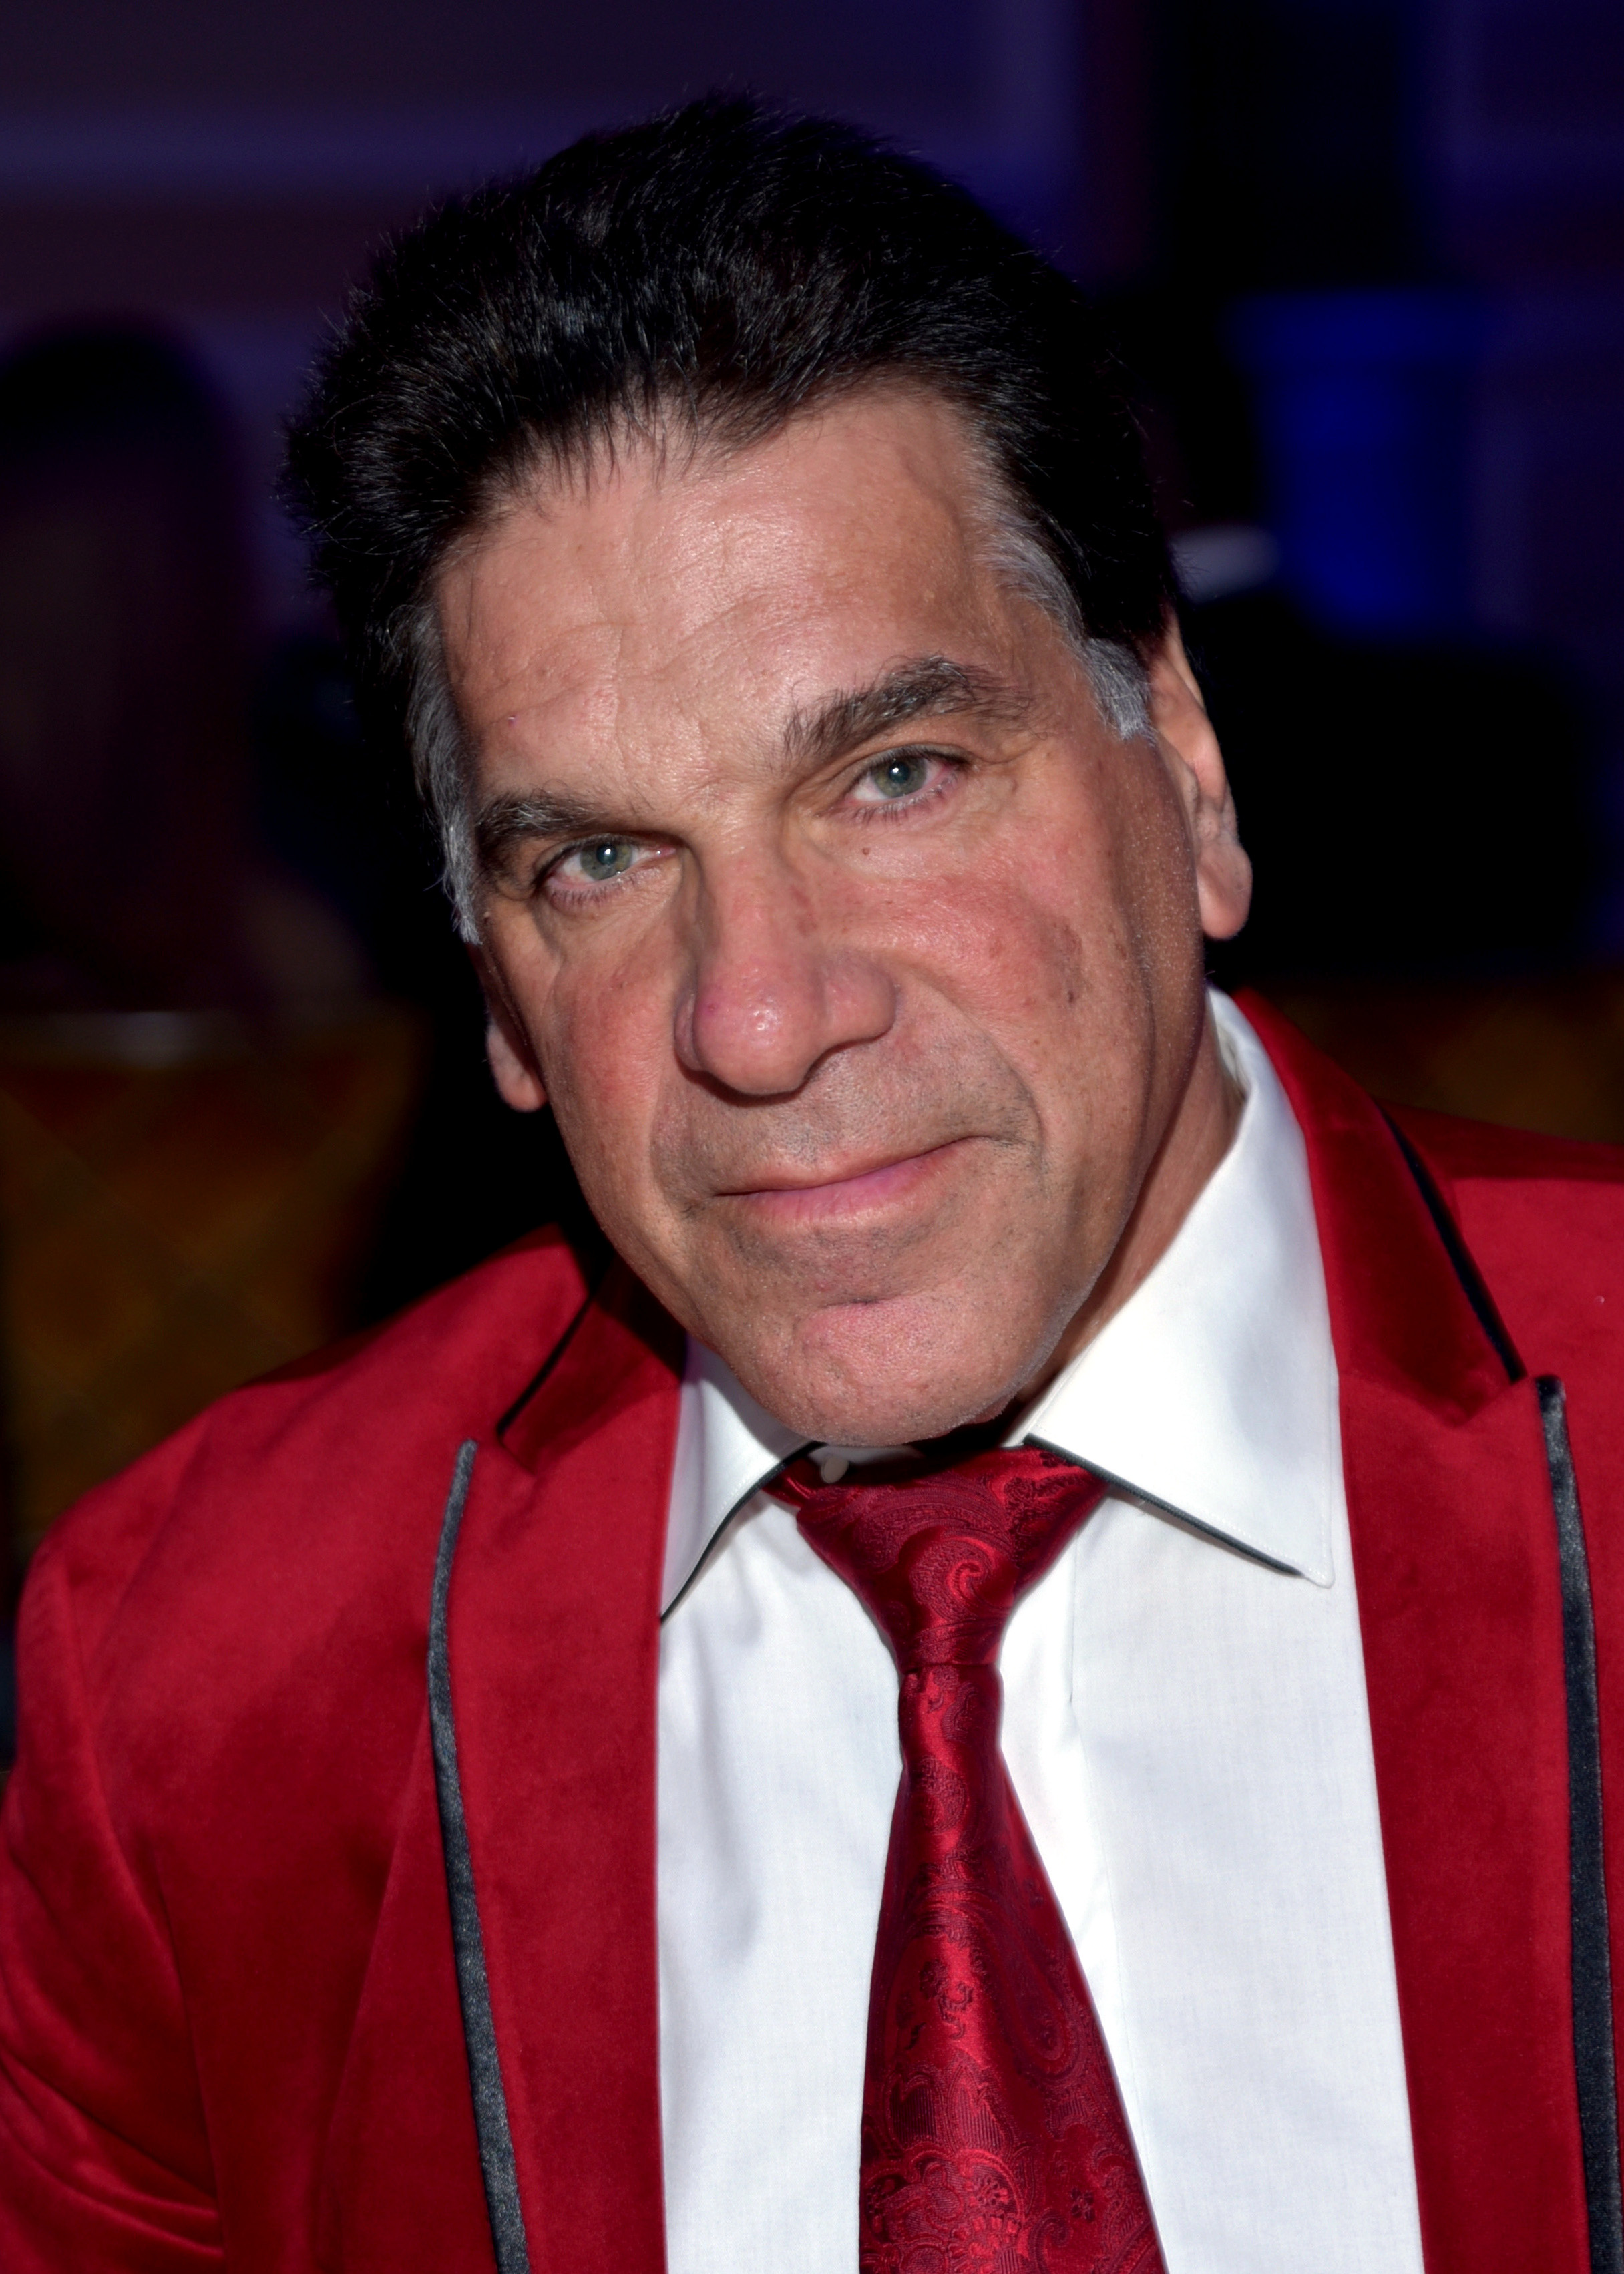 Ferrigno in Hollywood California on December 12, 2018